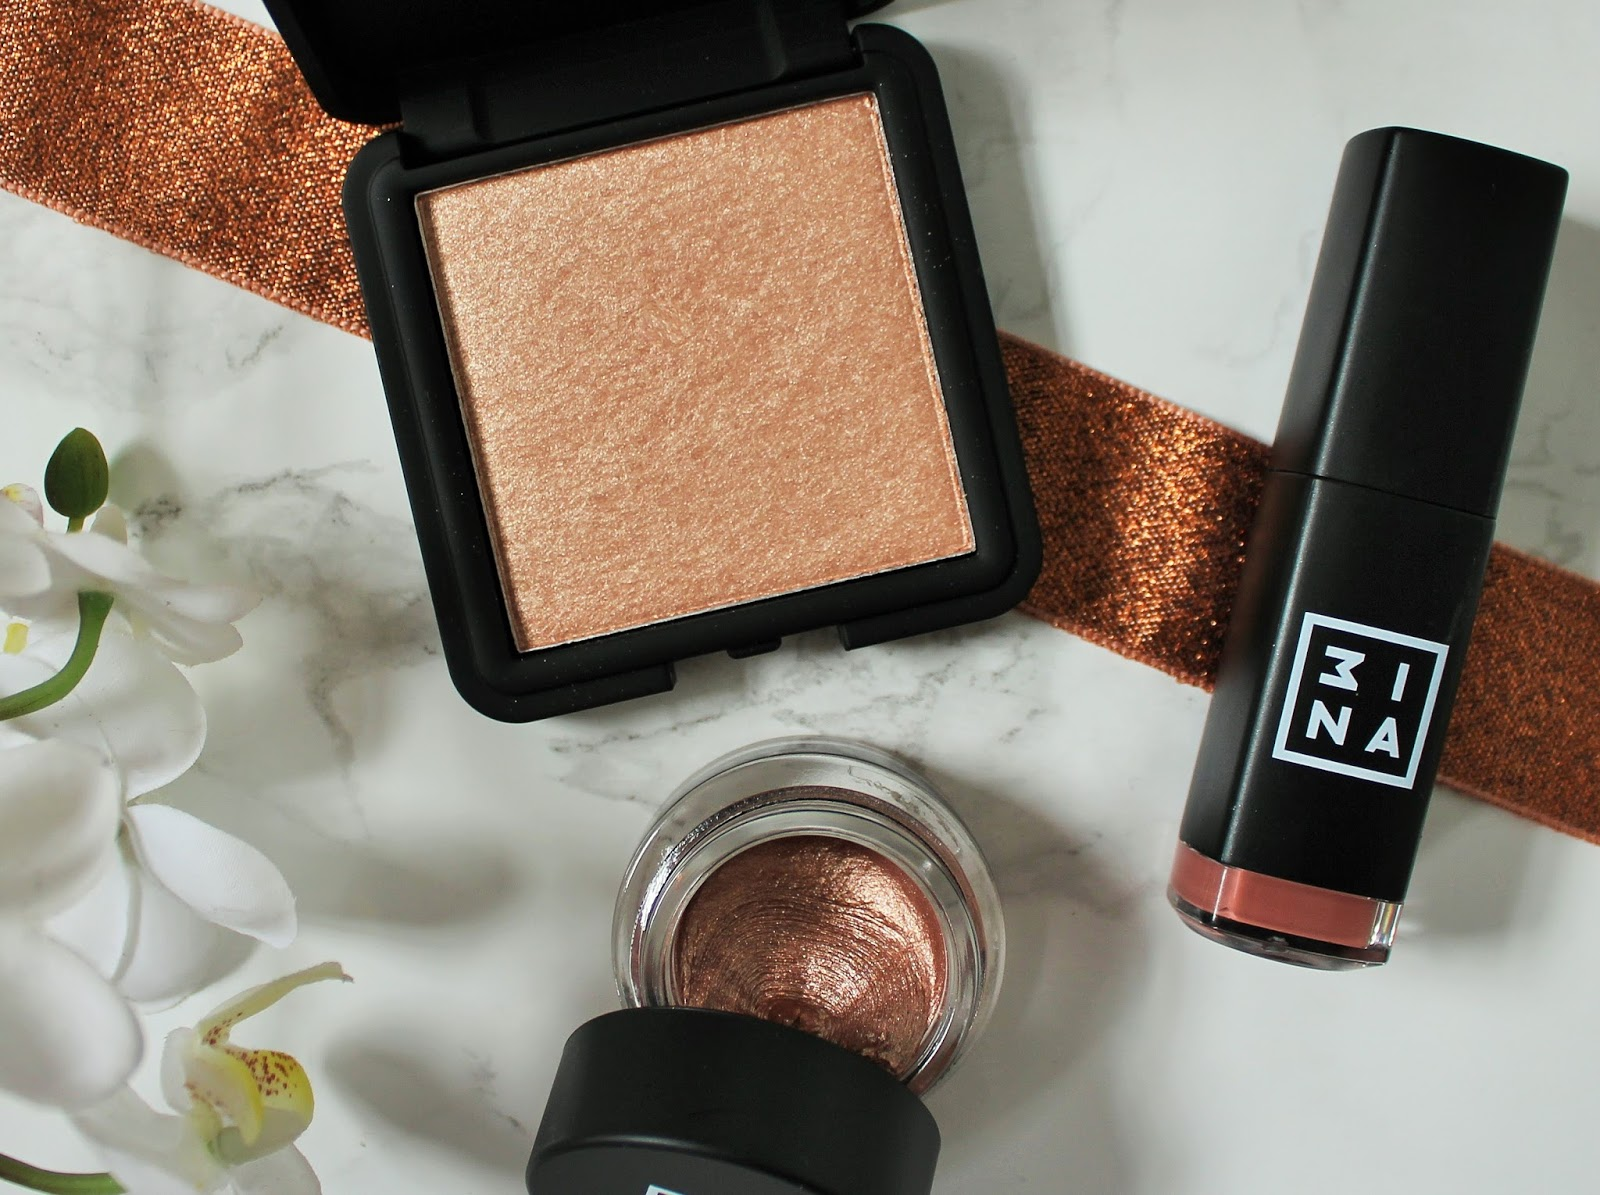 3ina bestselling makeup products - The highlighter 201